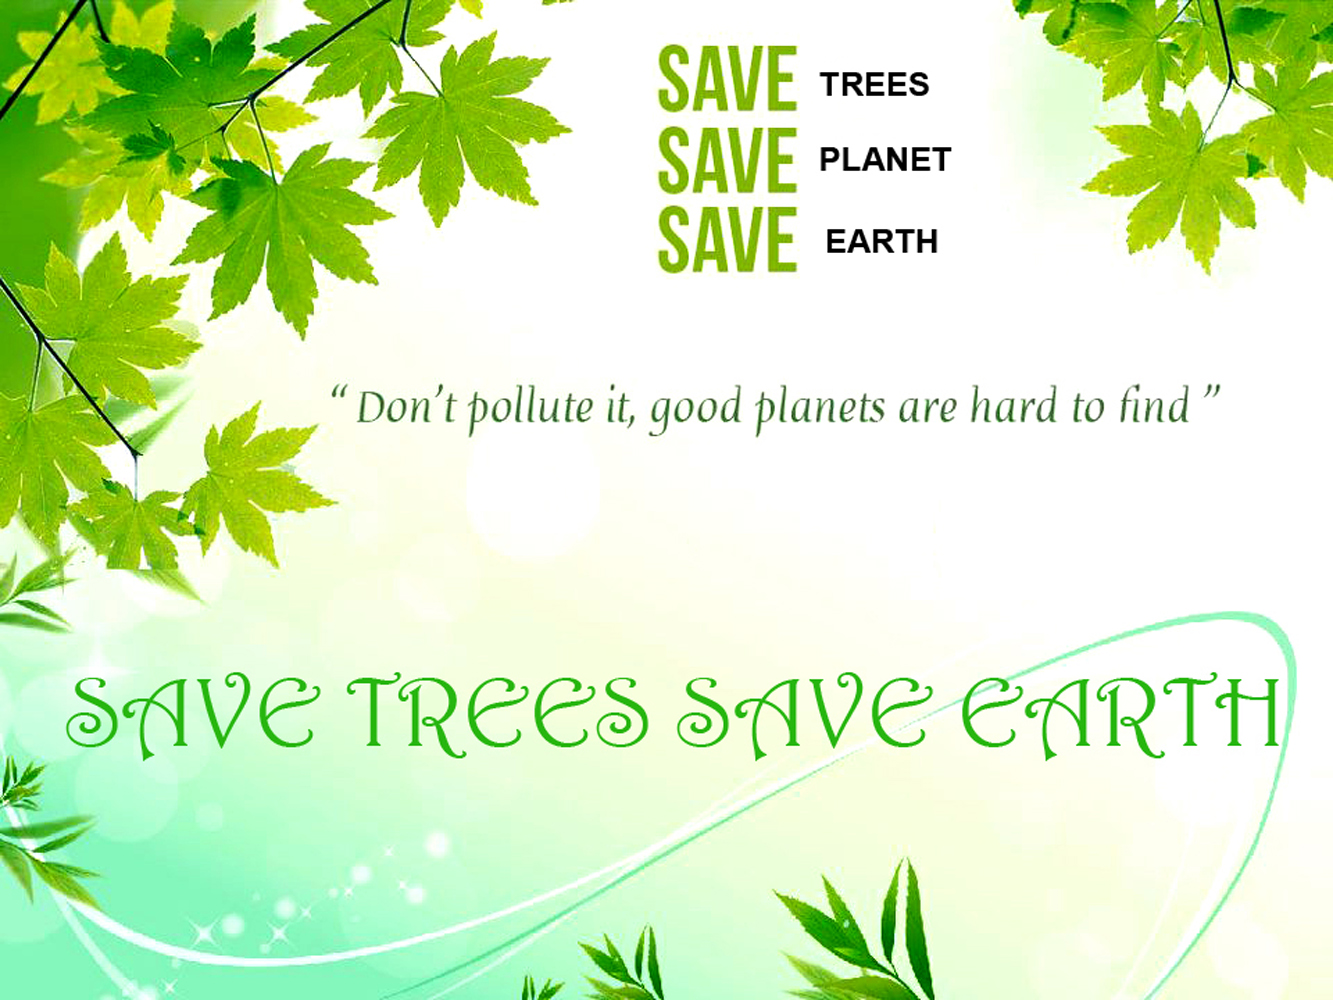 save trees save earth Saving trees around you every town and city has laws dictating which tree species need to be protected and when and how it's ok to cut down trees.